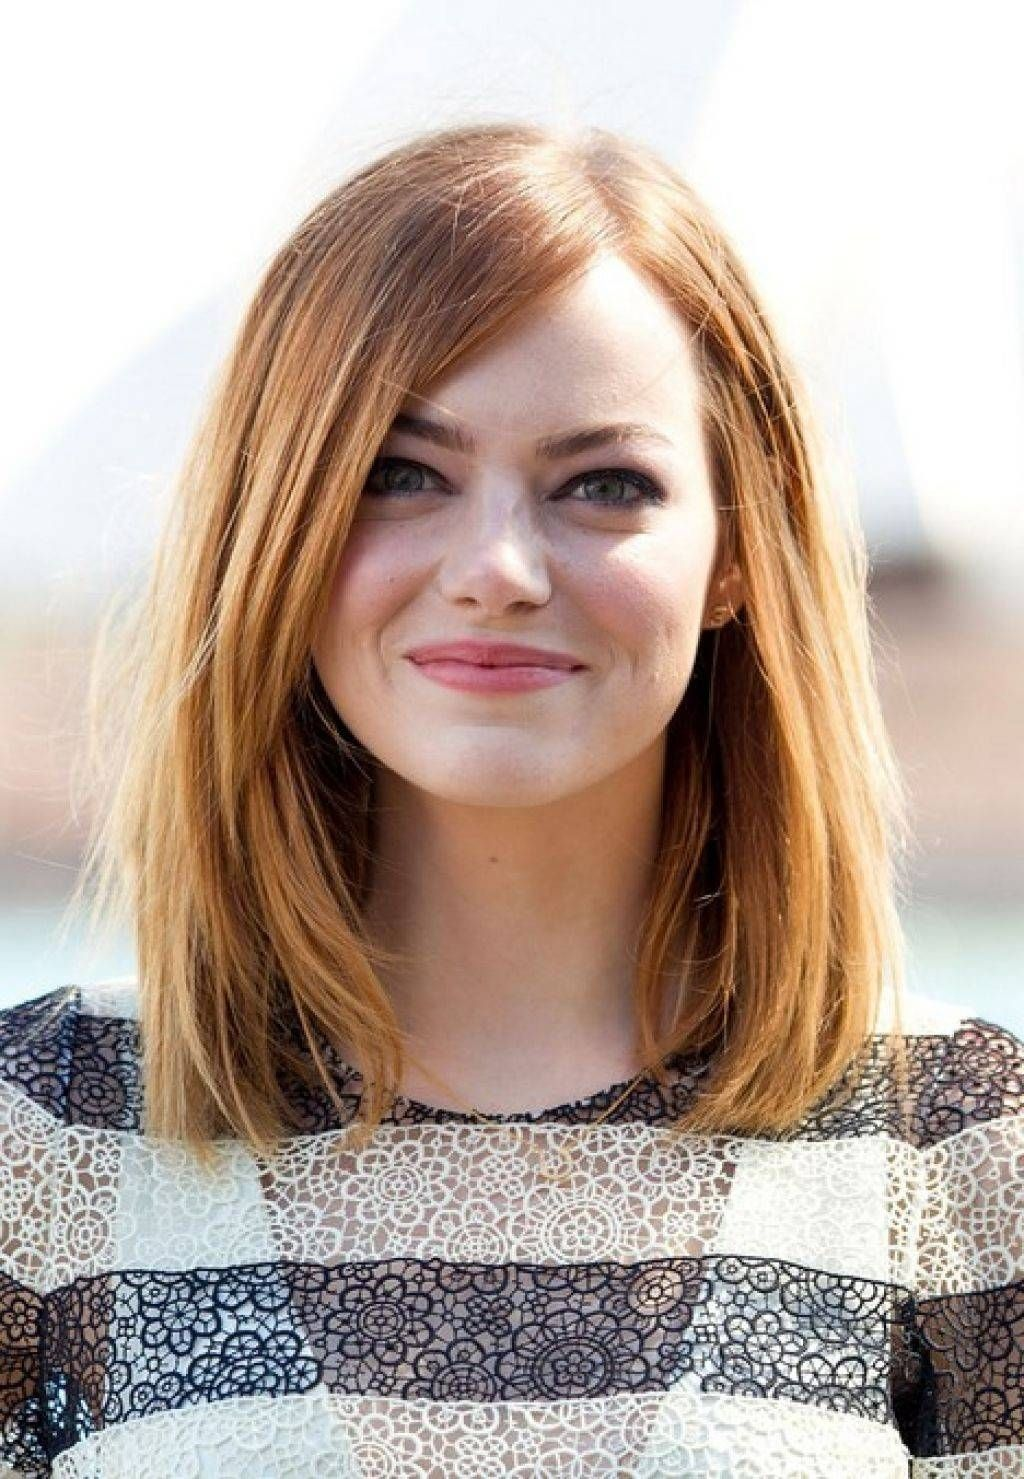 Hairstyles for round and chubby faces